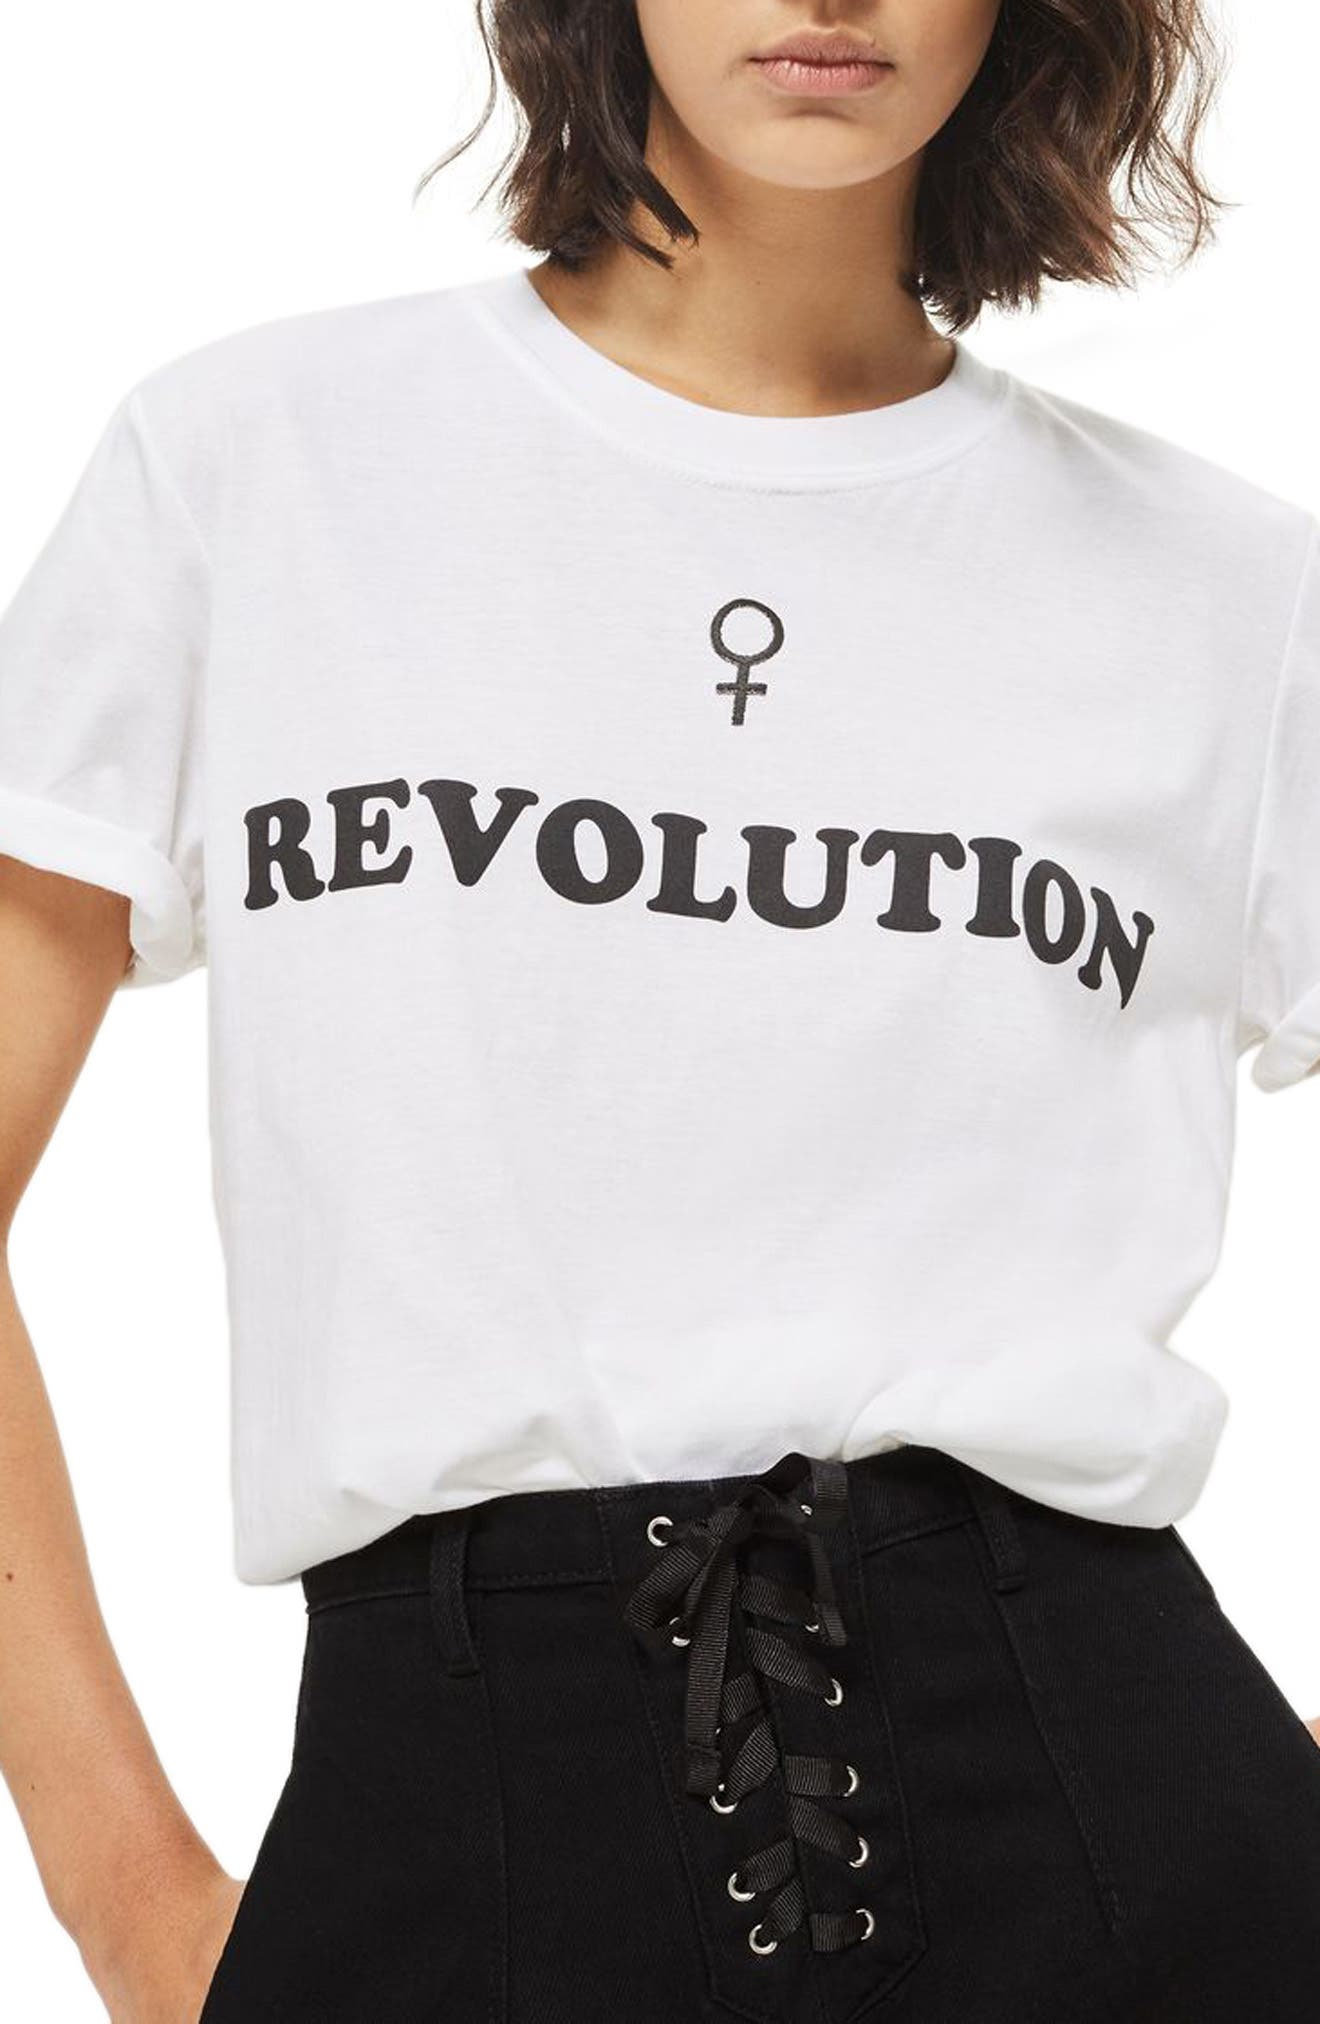 Topshop Female Revolution Graphic Tee